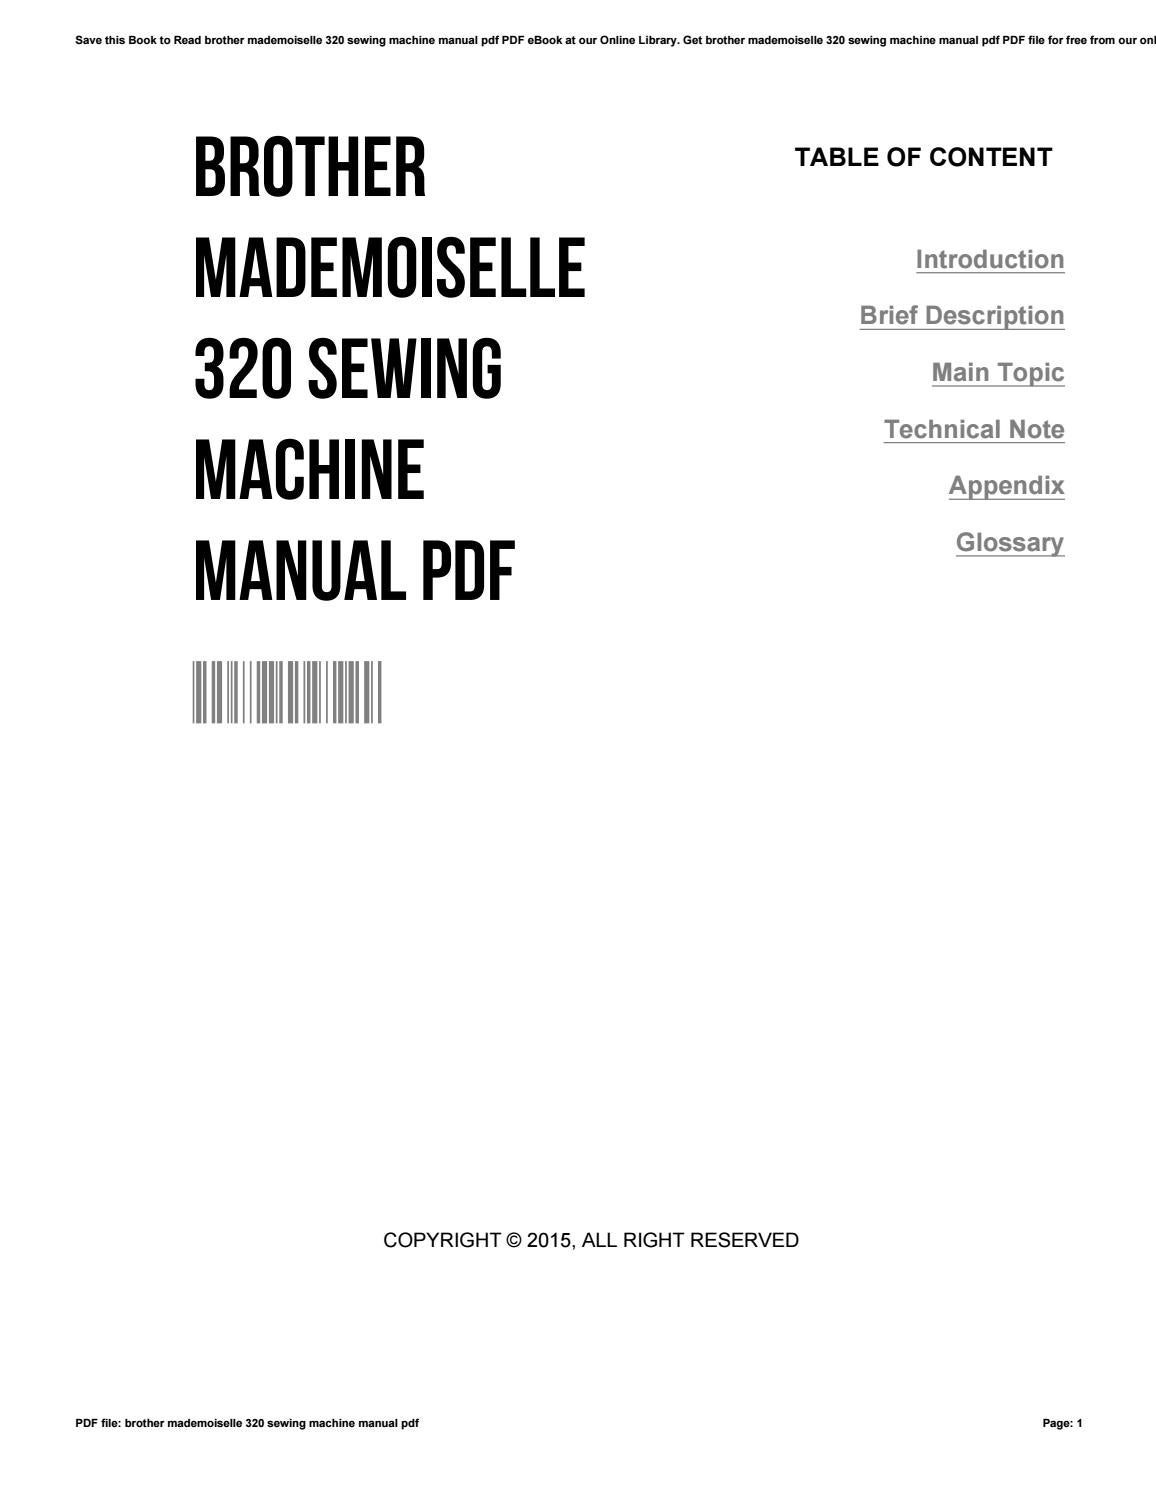 Brother mademoiselle 320 sewing machine manual pdf by